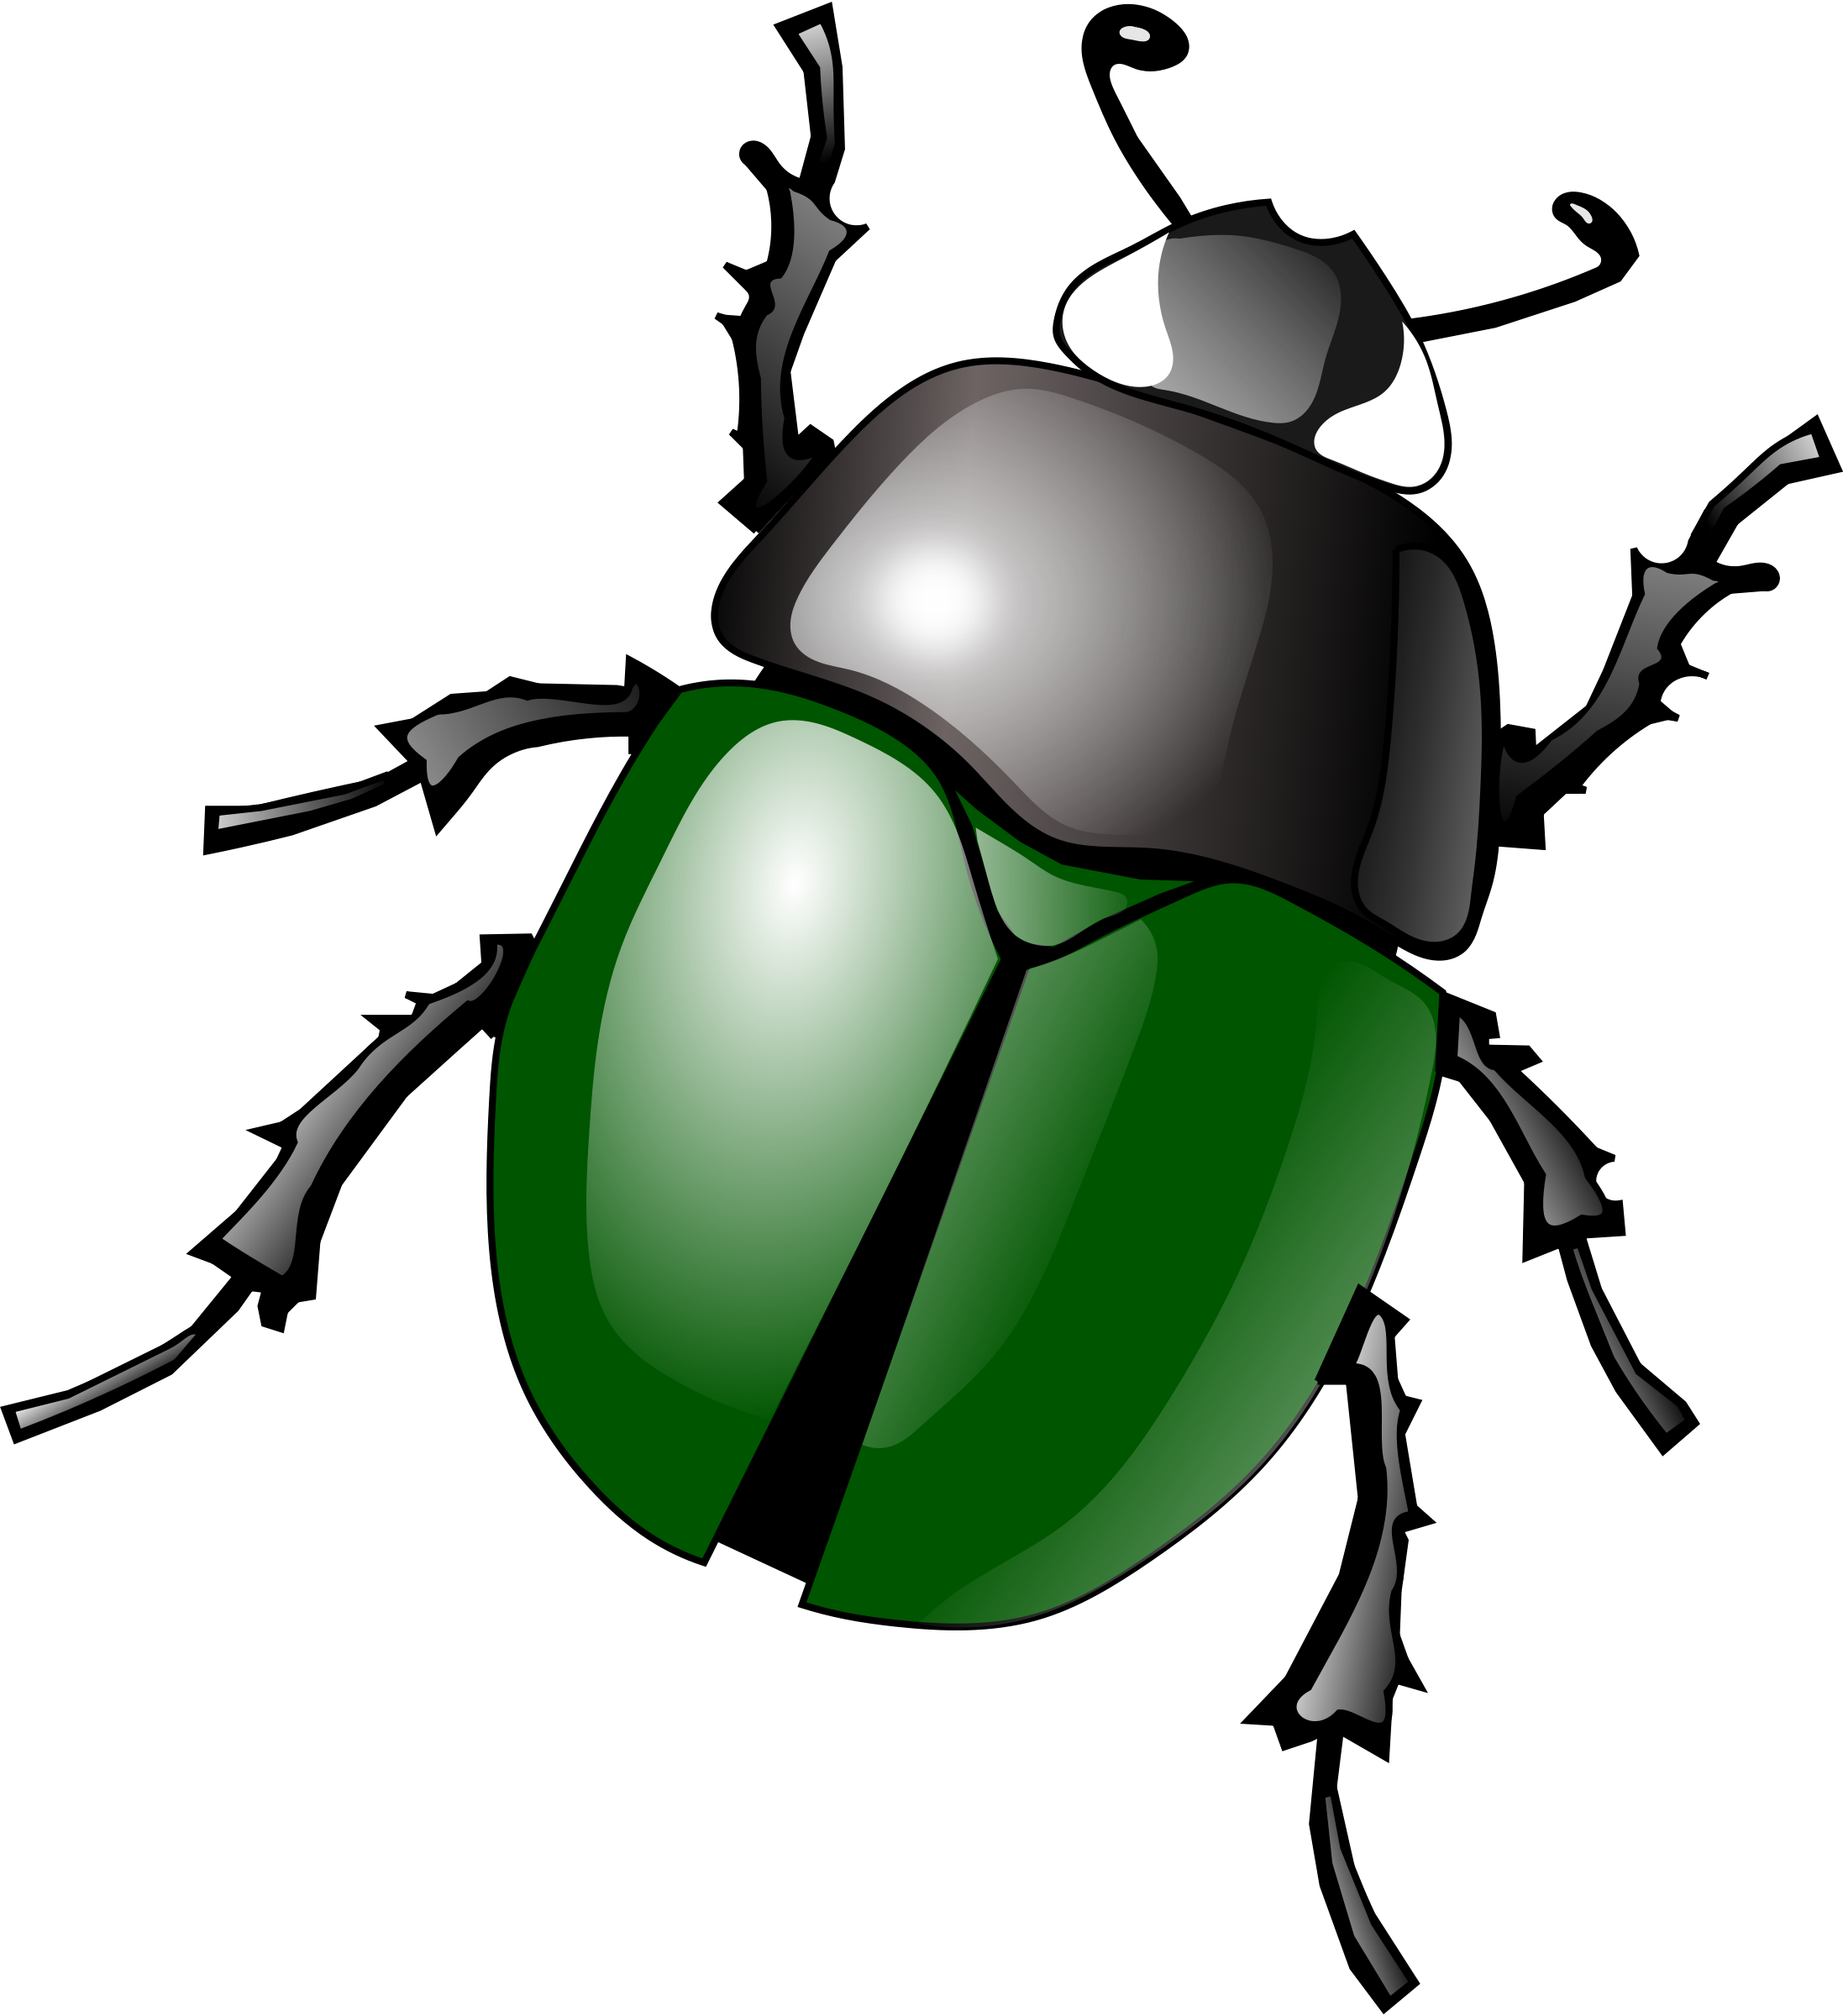 Insects clipart face. Bugs png images free